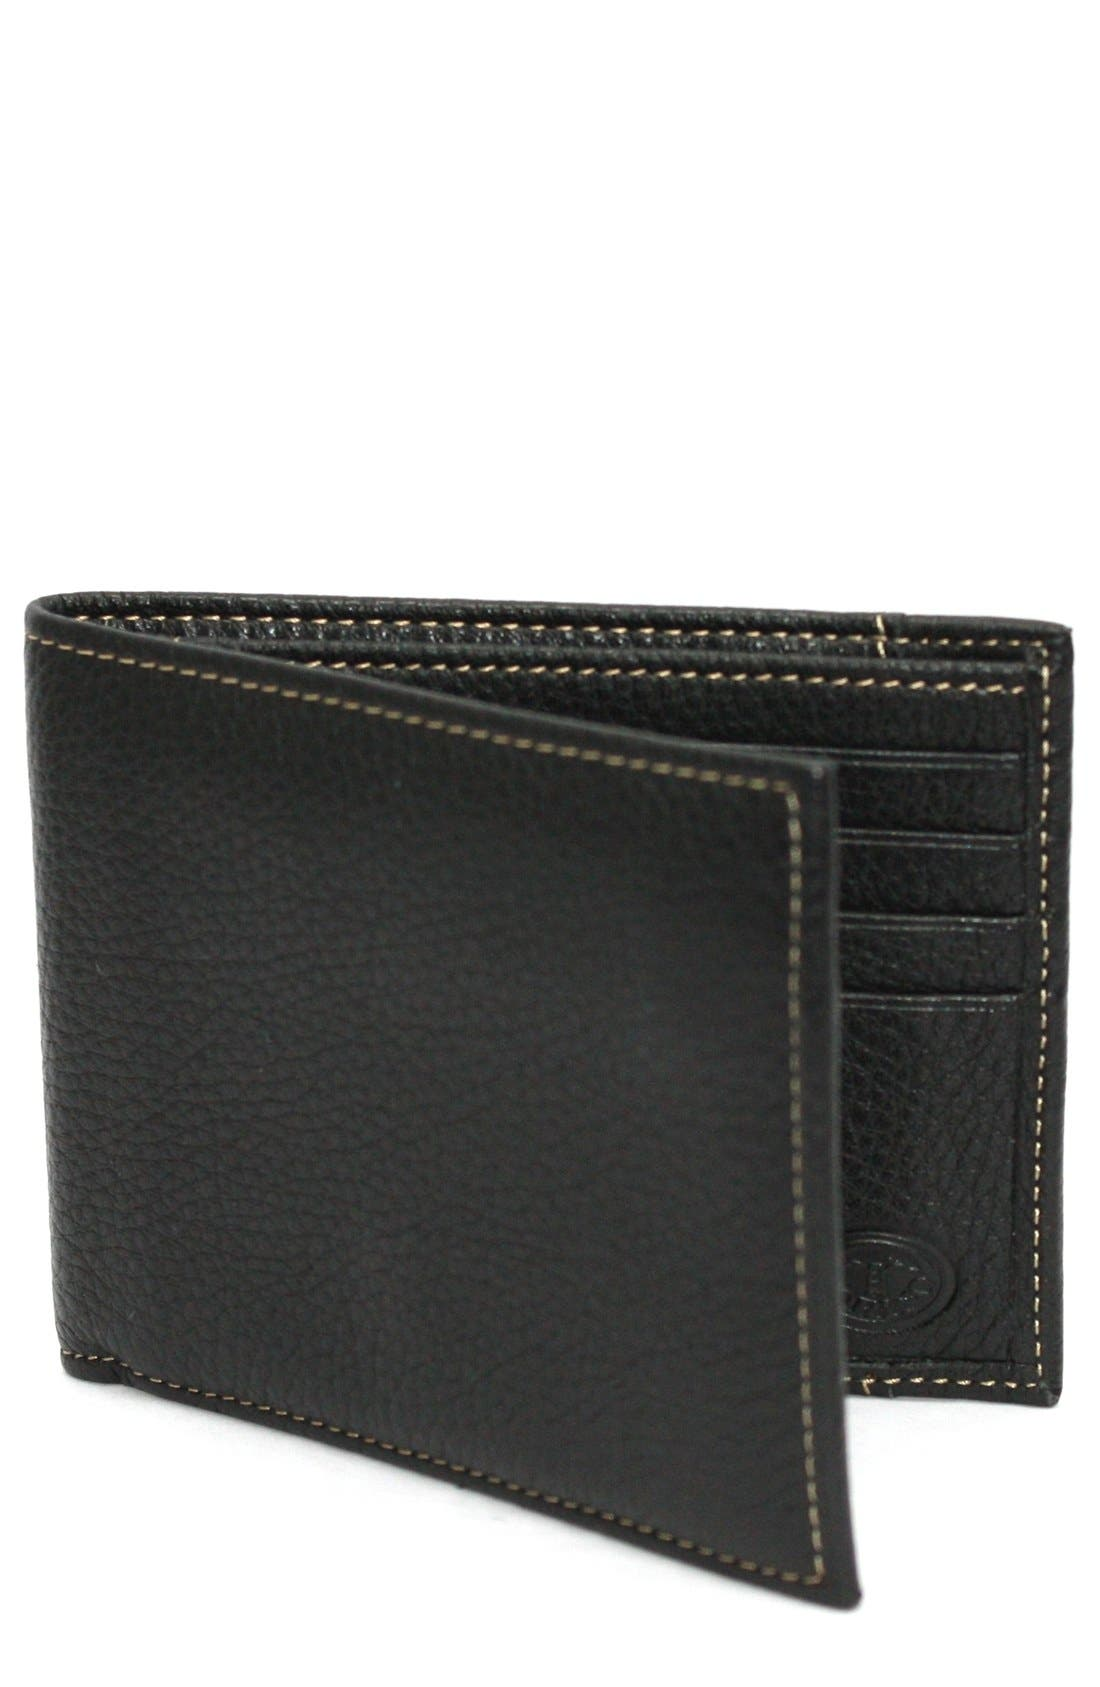 TORINO BELTS Leather Billfold Wallet